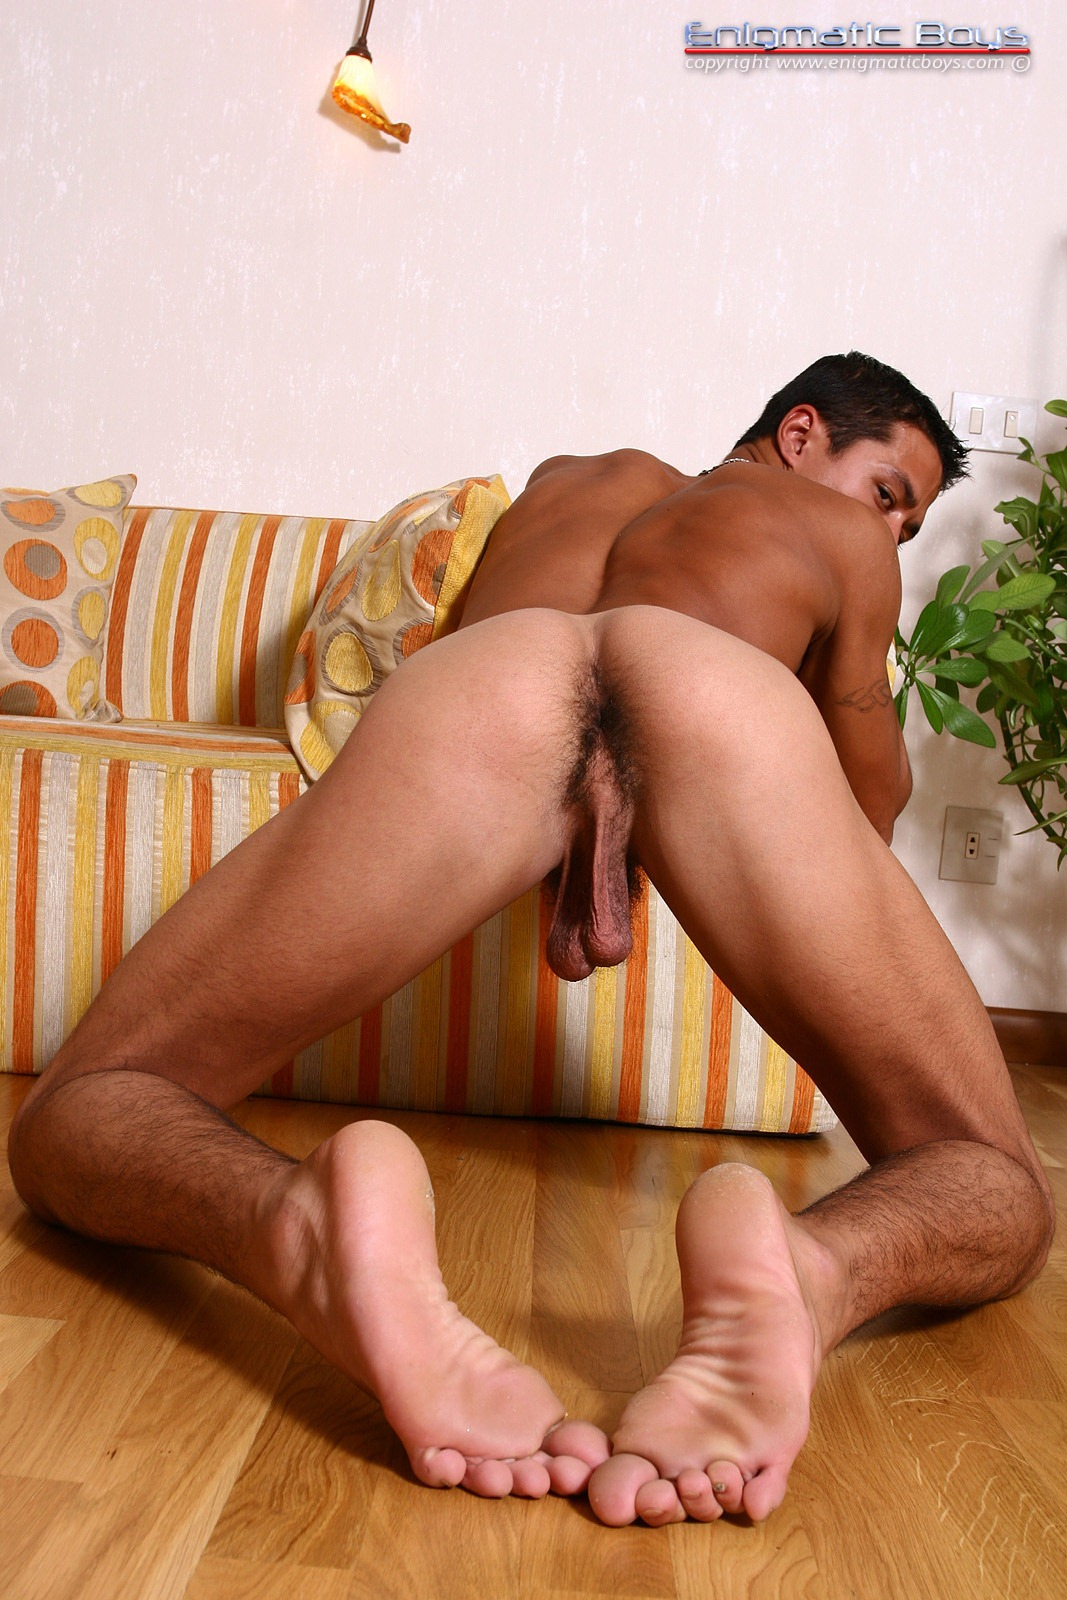 Arabic young gays first of all he039s cute 4